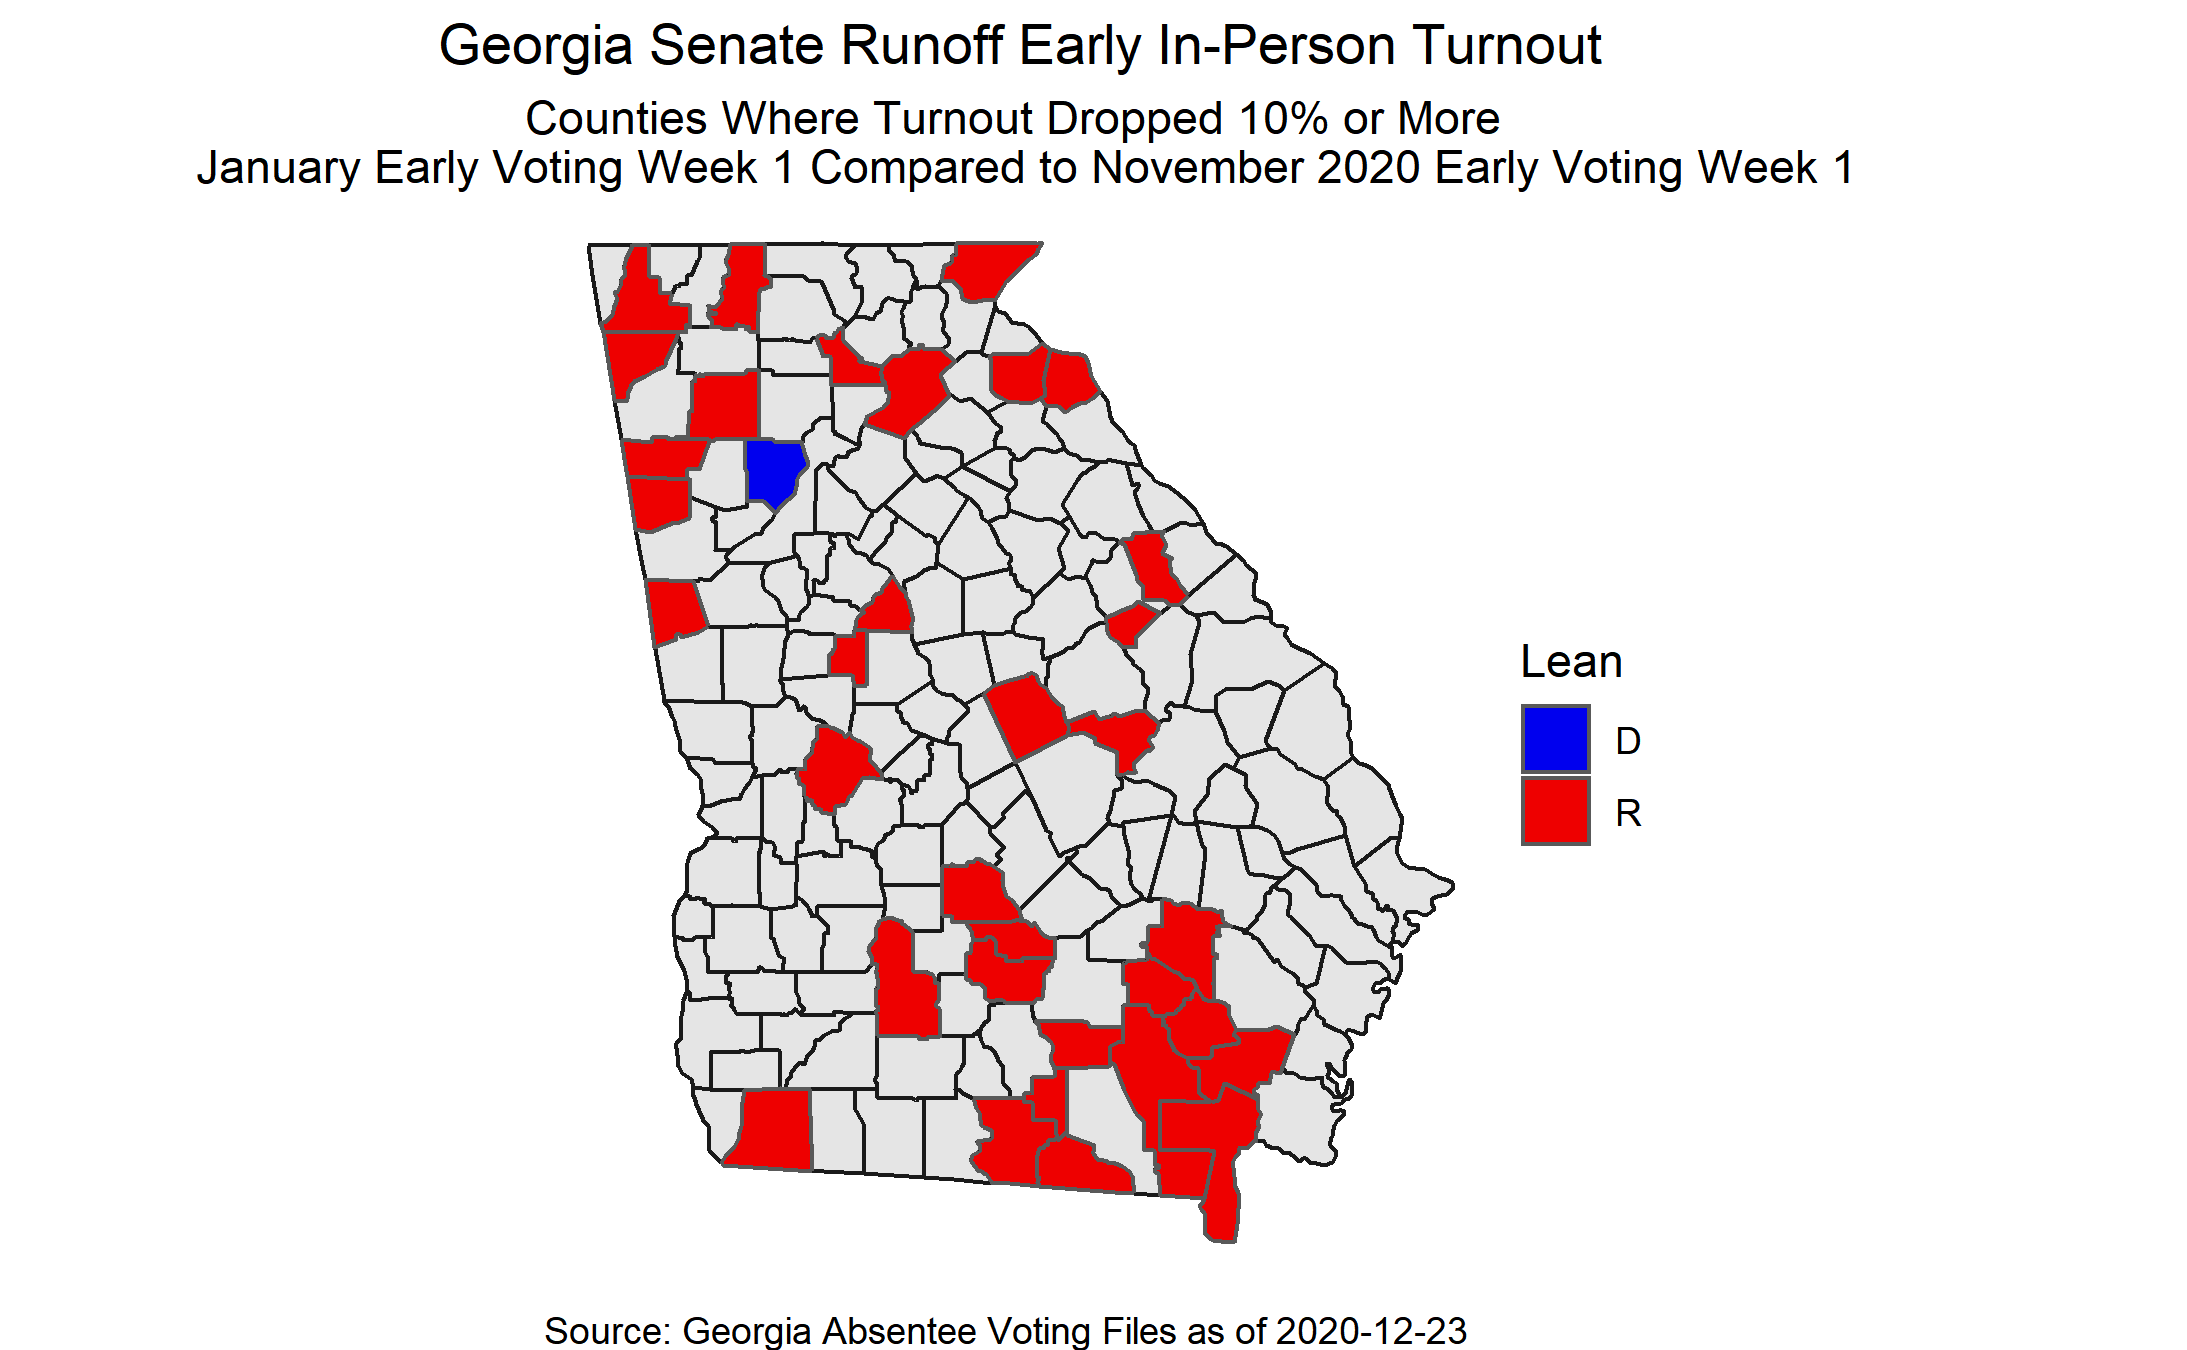 Counties where early voting turnout dropped 10% during the Georgia Senate runoffs during the first week.